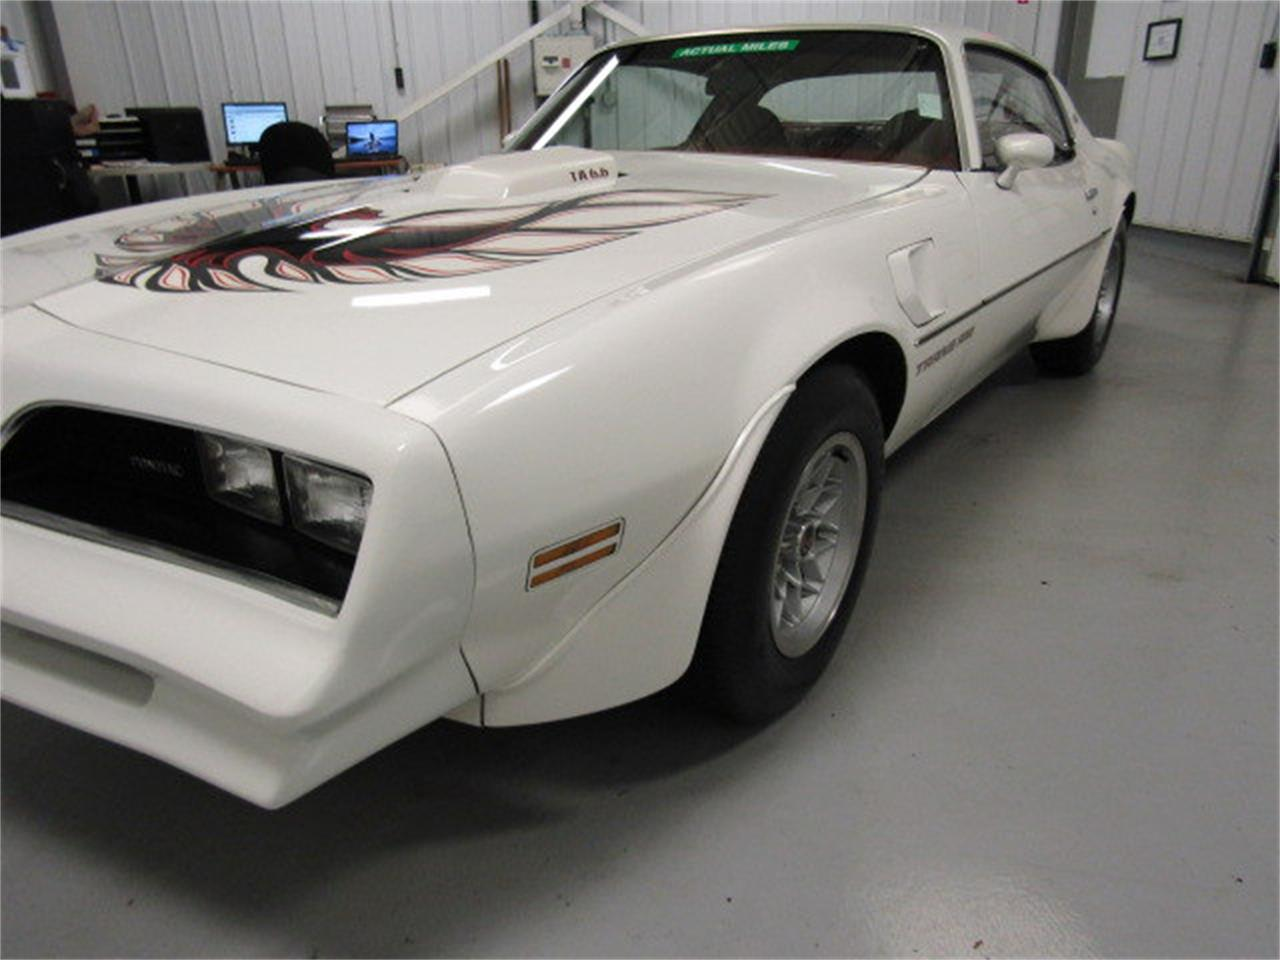 Large Picture of '78 Firebird - $39,000.00 Offered by Duncan Imports & Classic Cars - JLC2